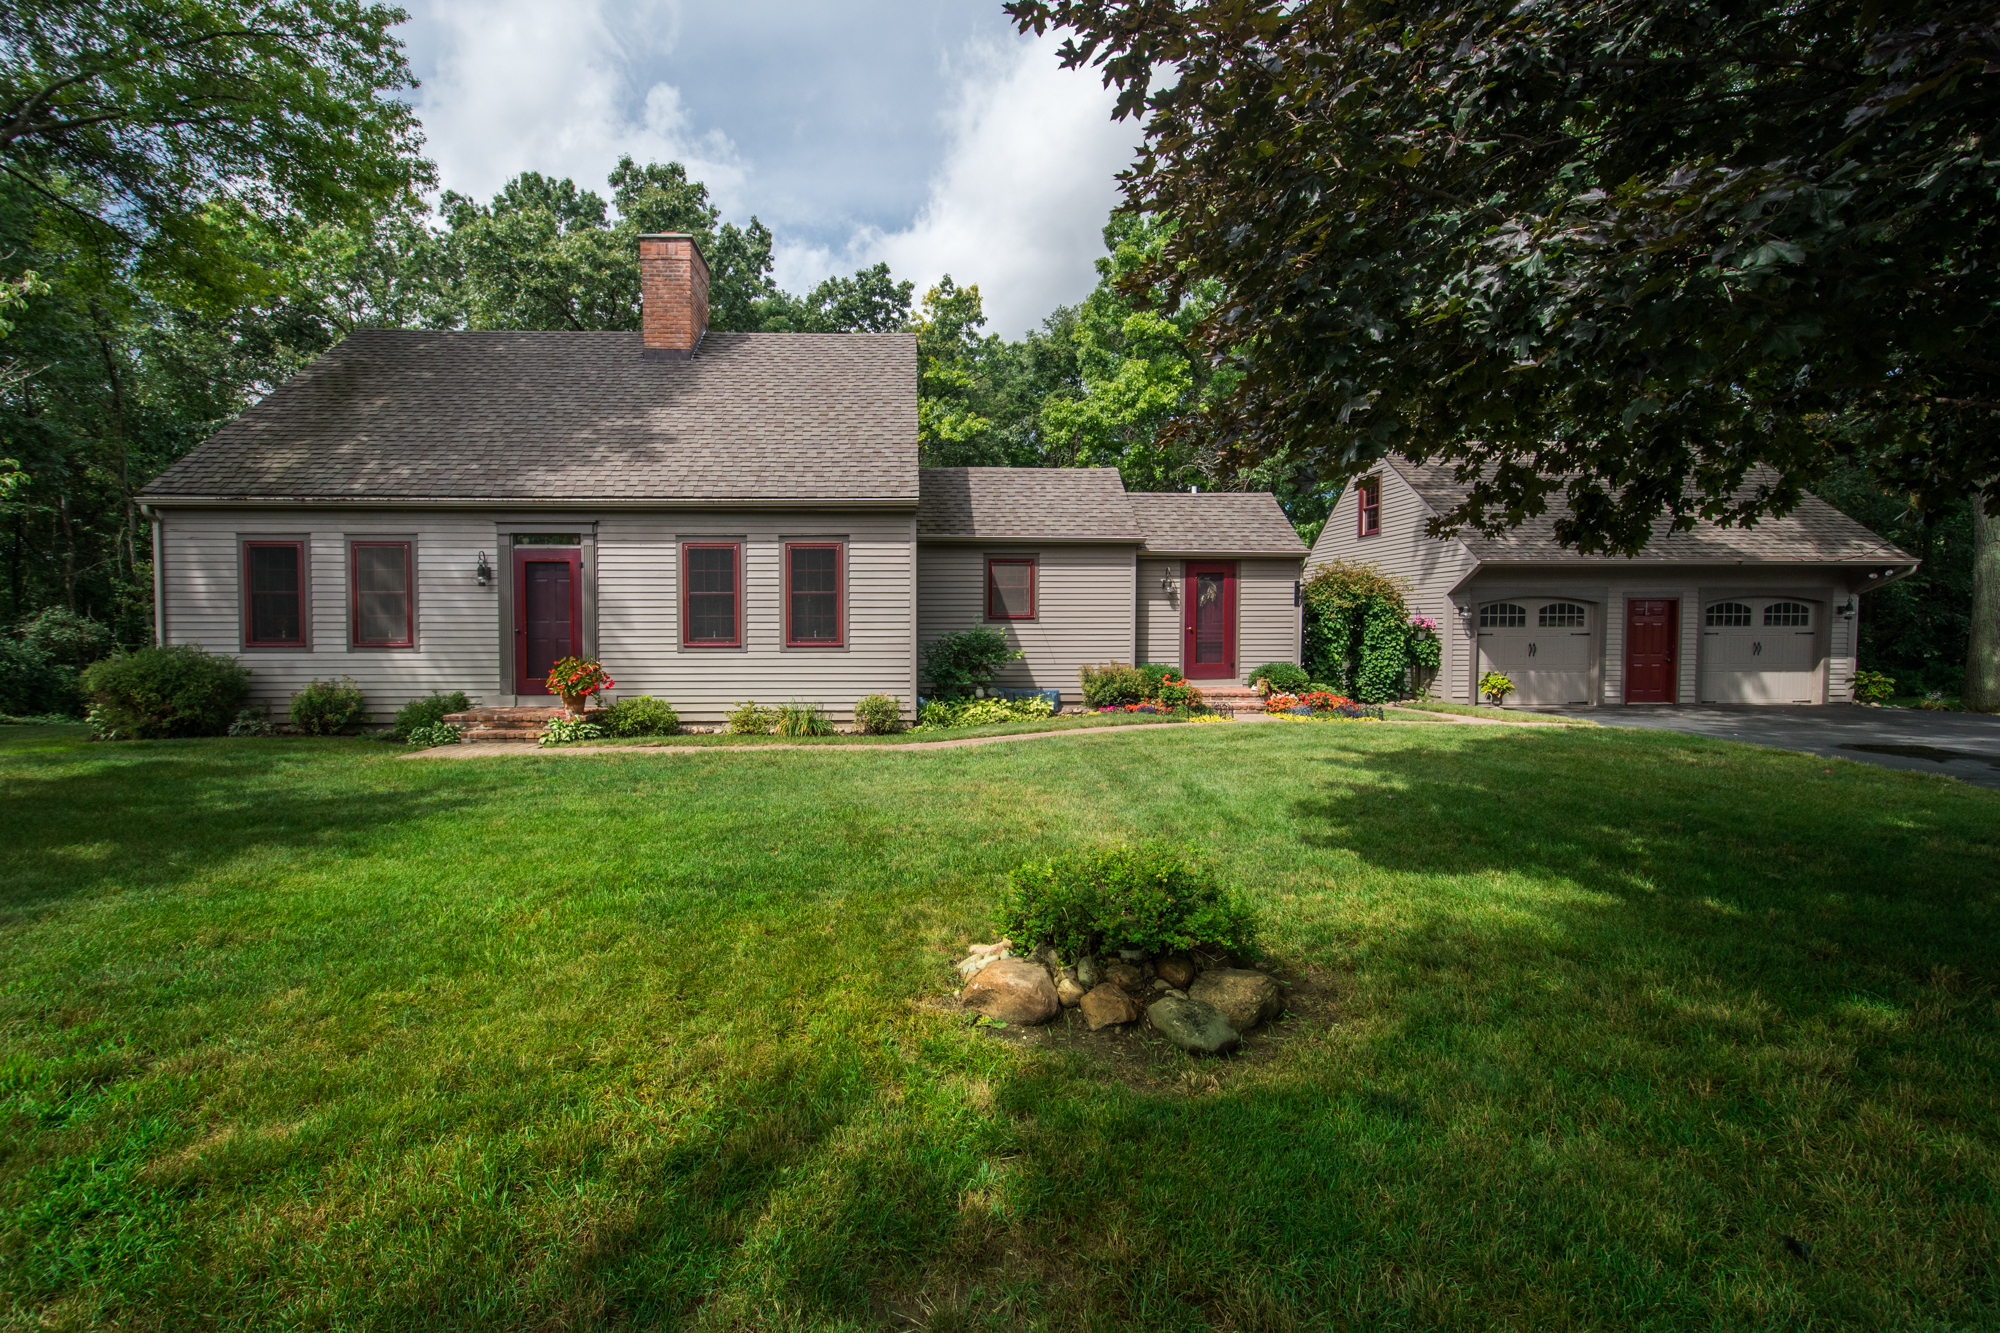 Pinebrook Lane- South Lyon - $425,000   DOM 53 / Sold for 100% of asking price / 16 Showings